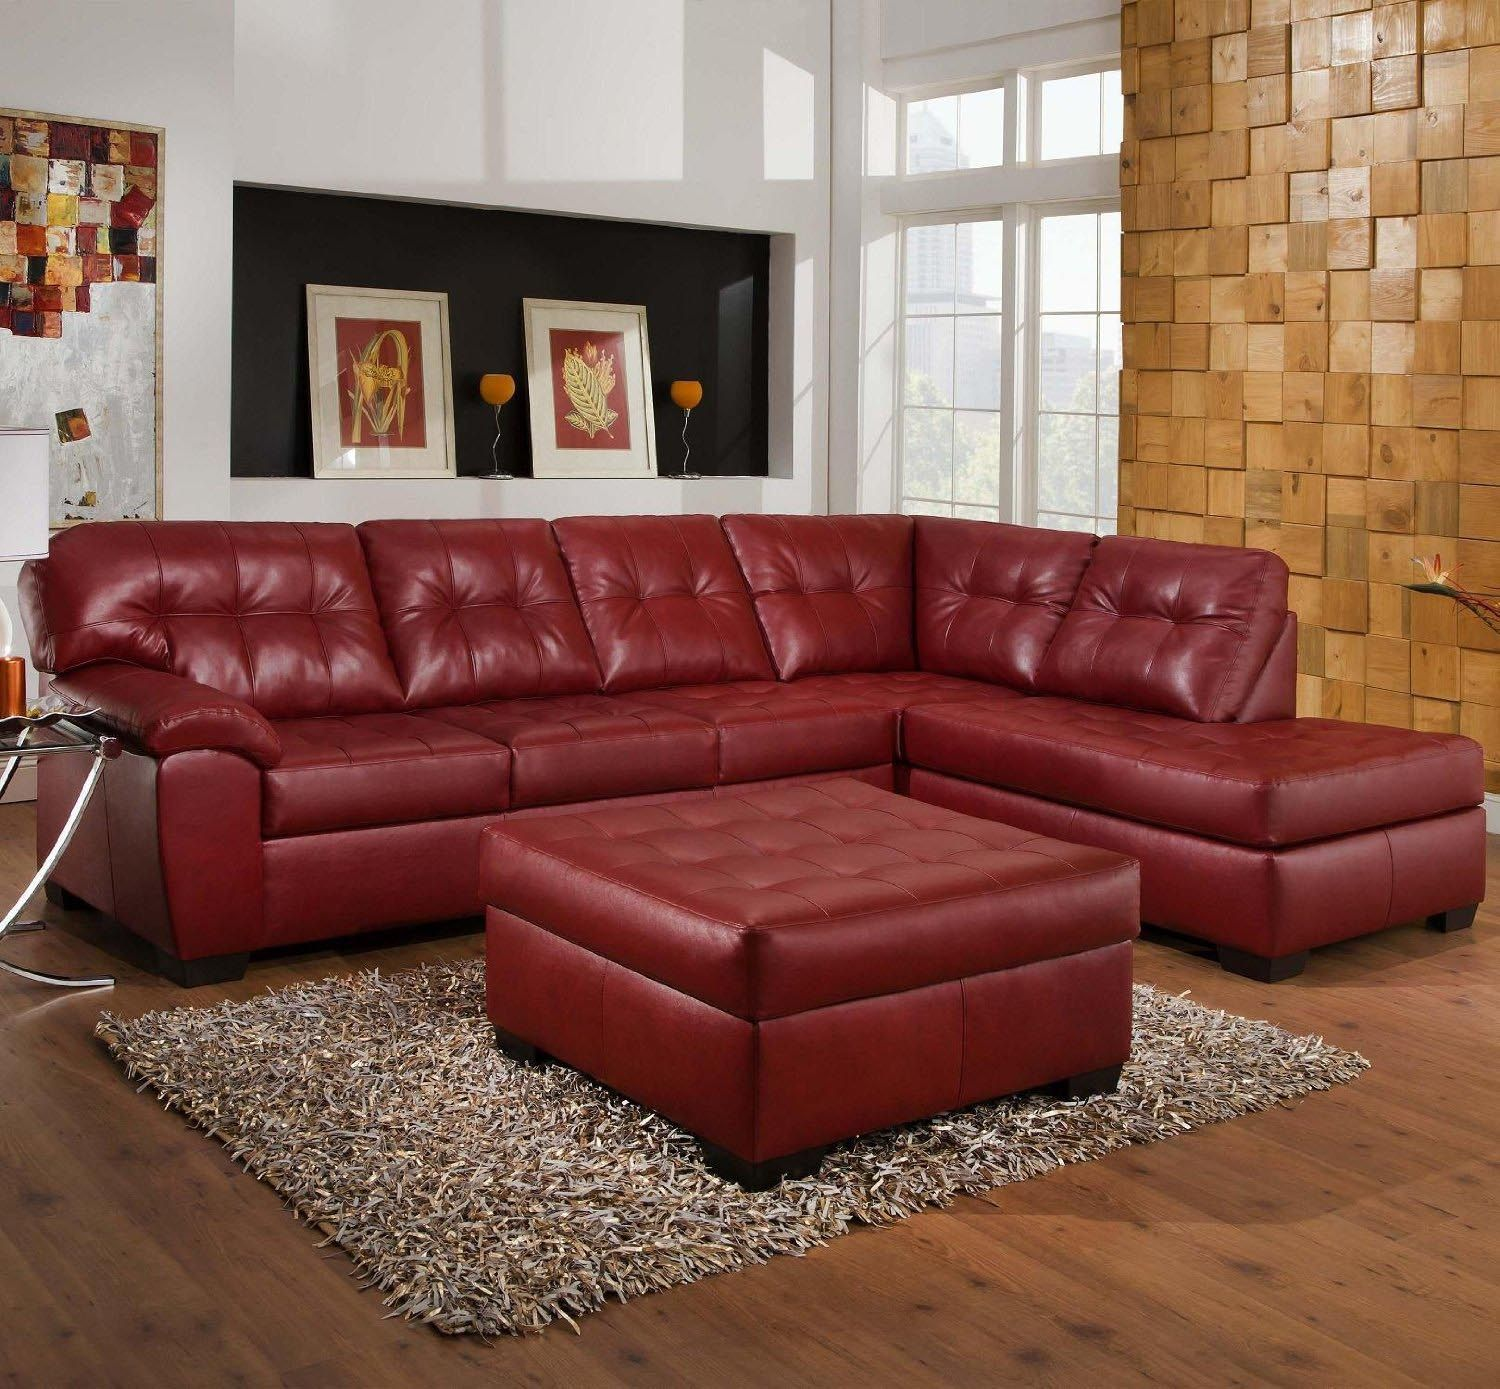 Colorful Ottoman Coffee Table Red Leather Ottoman Coffee Table Coffee Tables Red Sectional